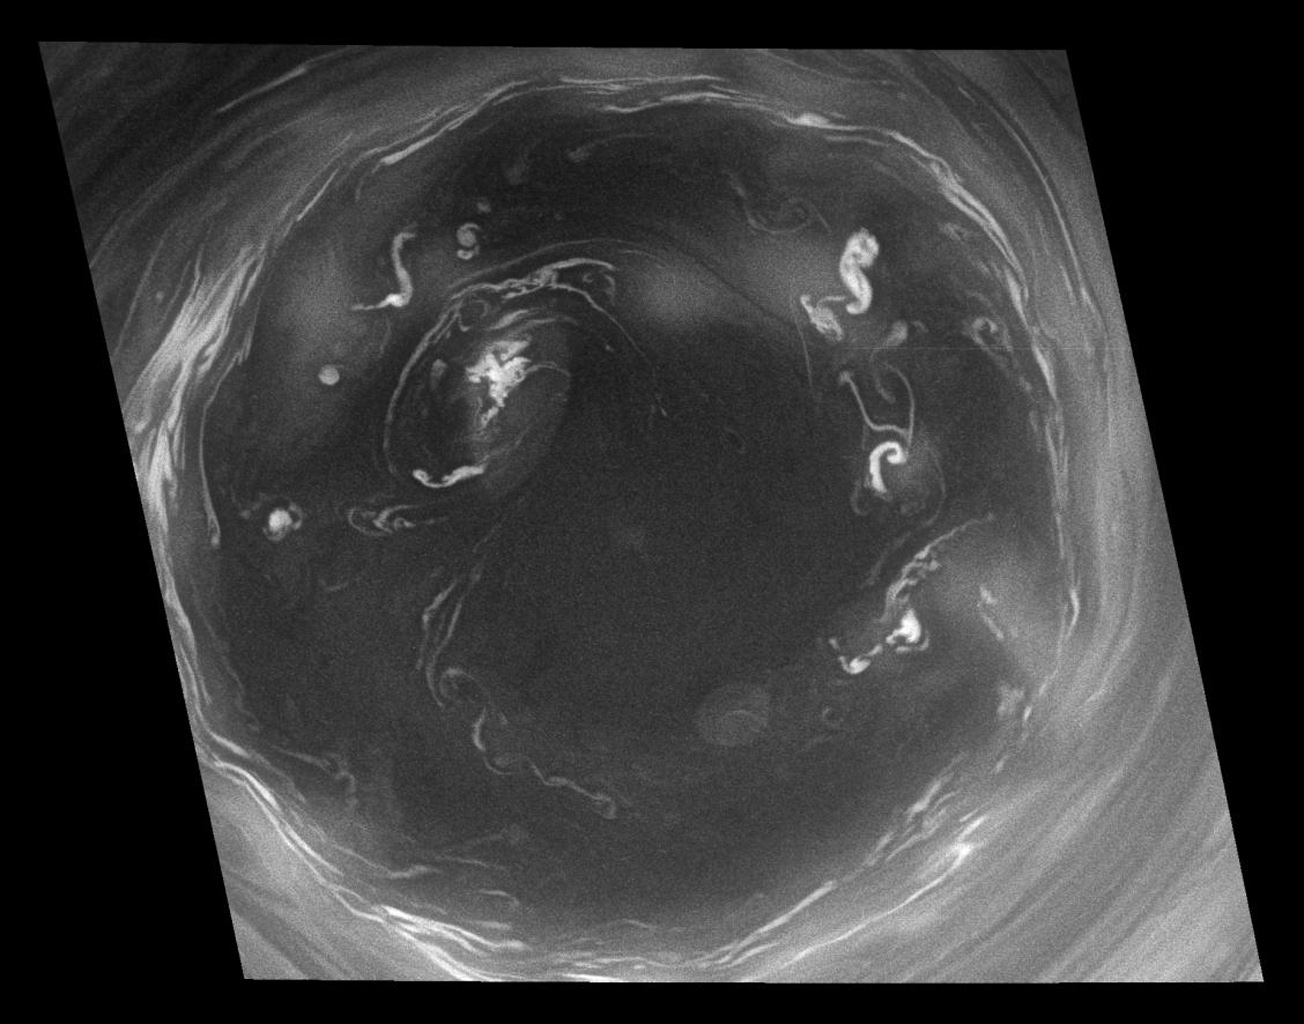 This detailed Cassini view of the monstrous vortex at Saturn's south pole provides valuable insight about the mechanisms that power the planet's atmosphere. This image was taken with NASA's Cassini spacecraft's narrow-angle camera on July 14, 2008.